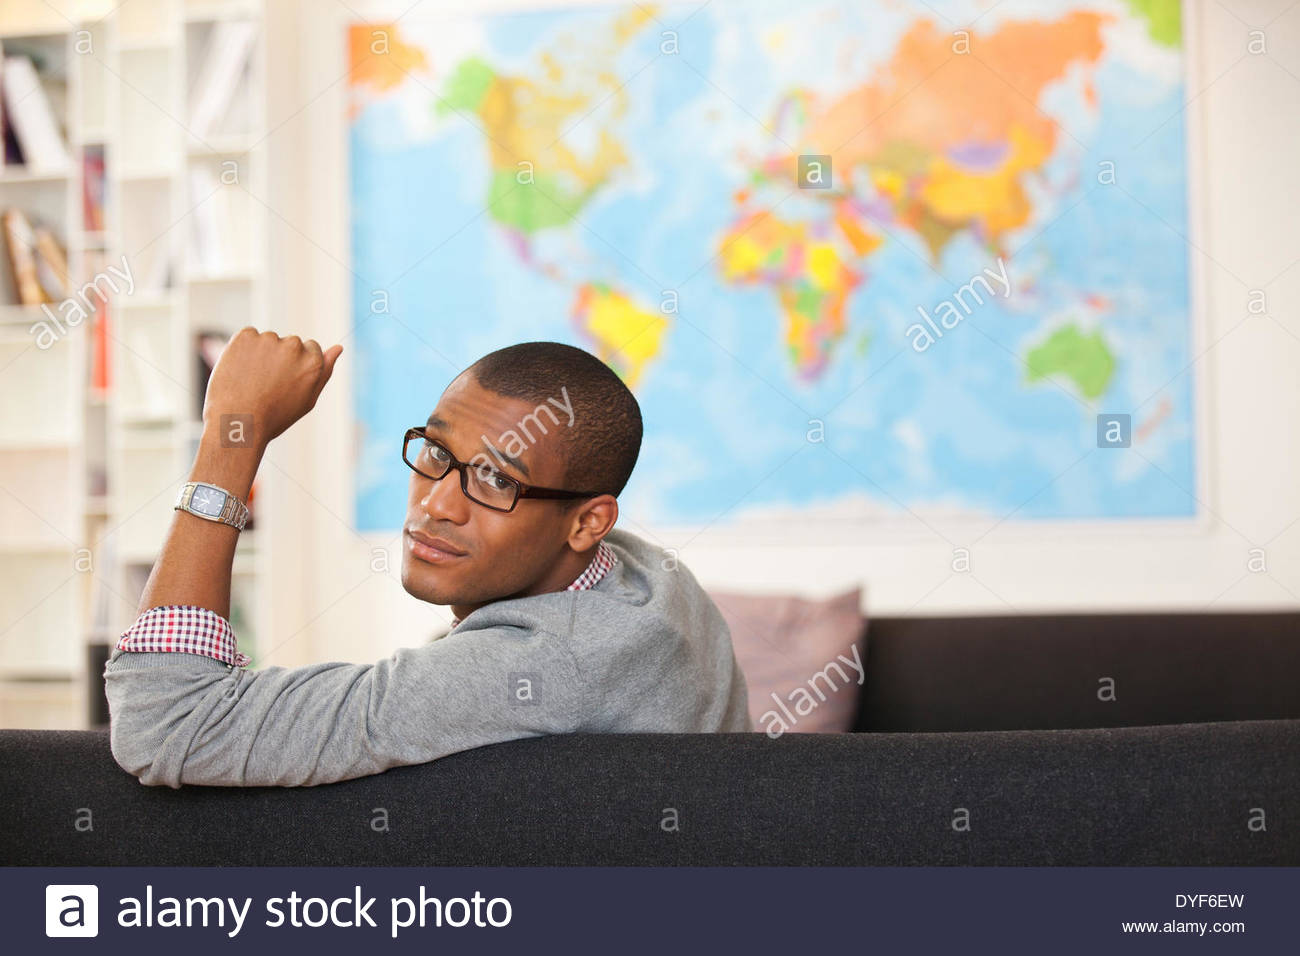 Portrait of smiling businessman in office Photo Stock